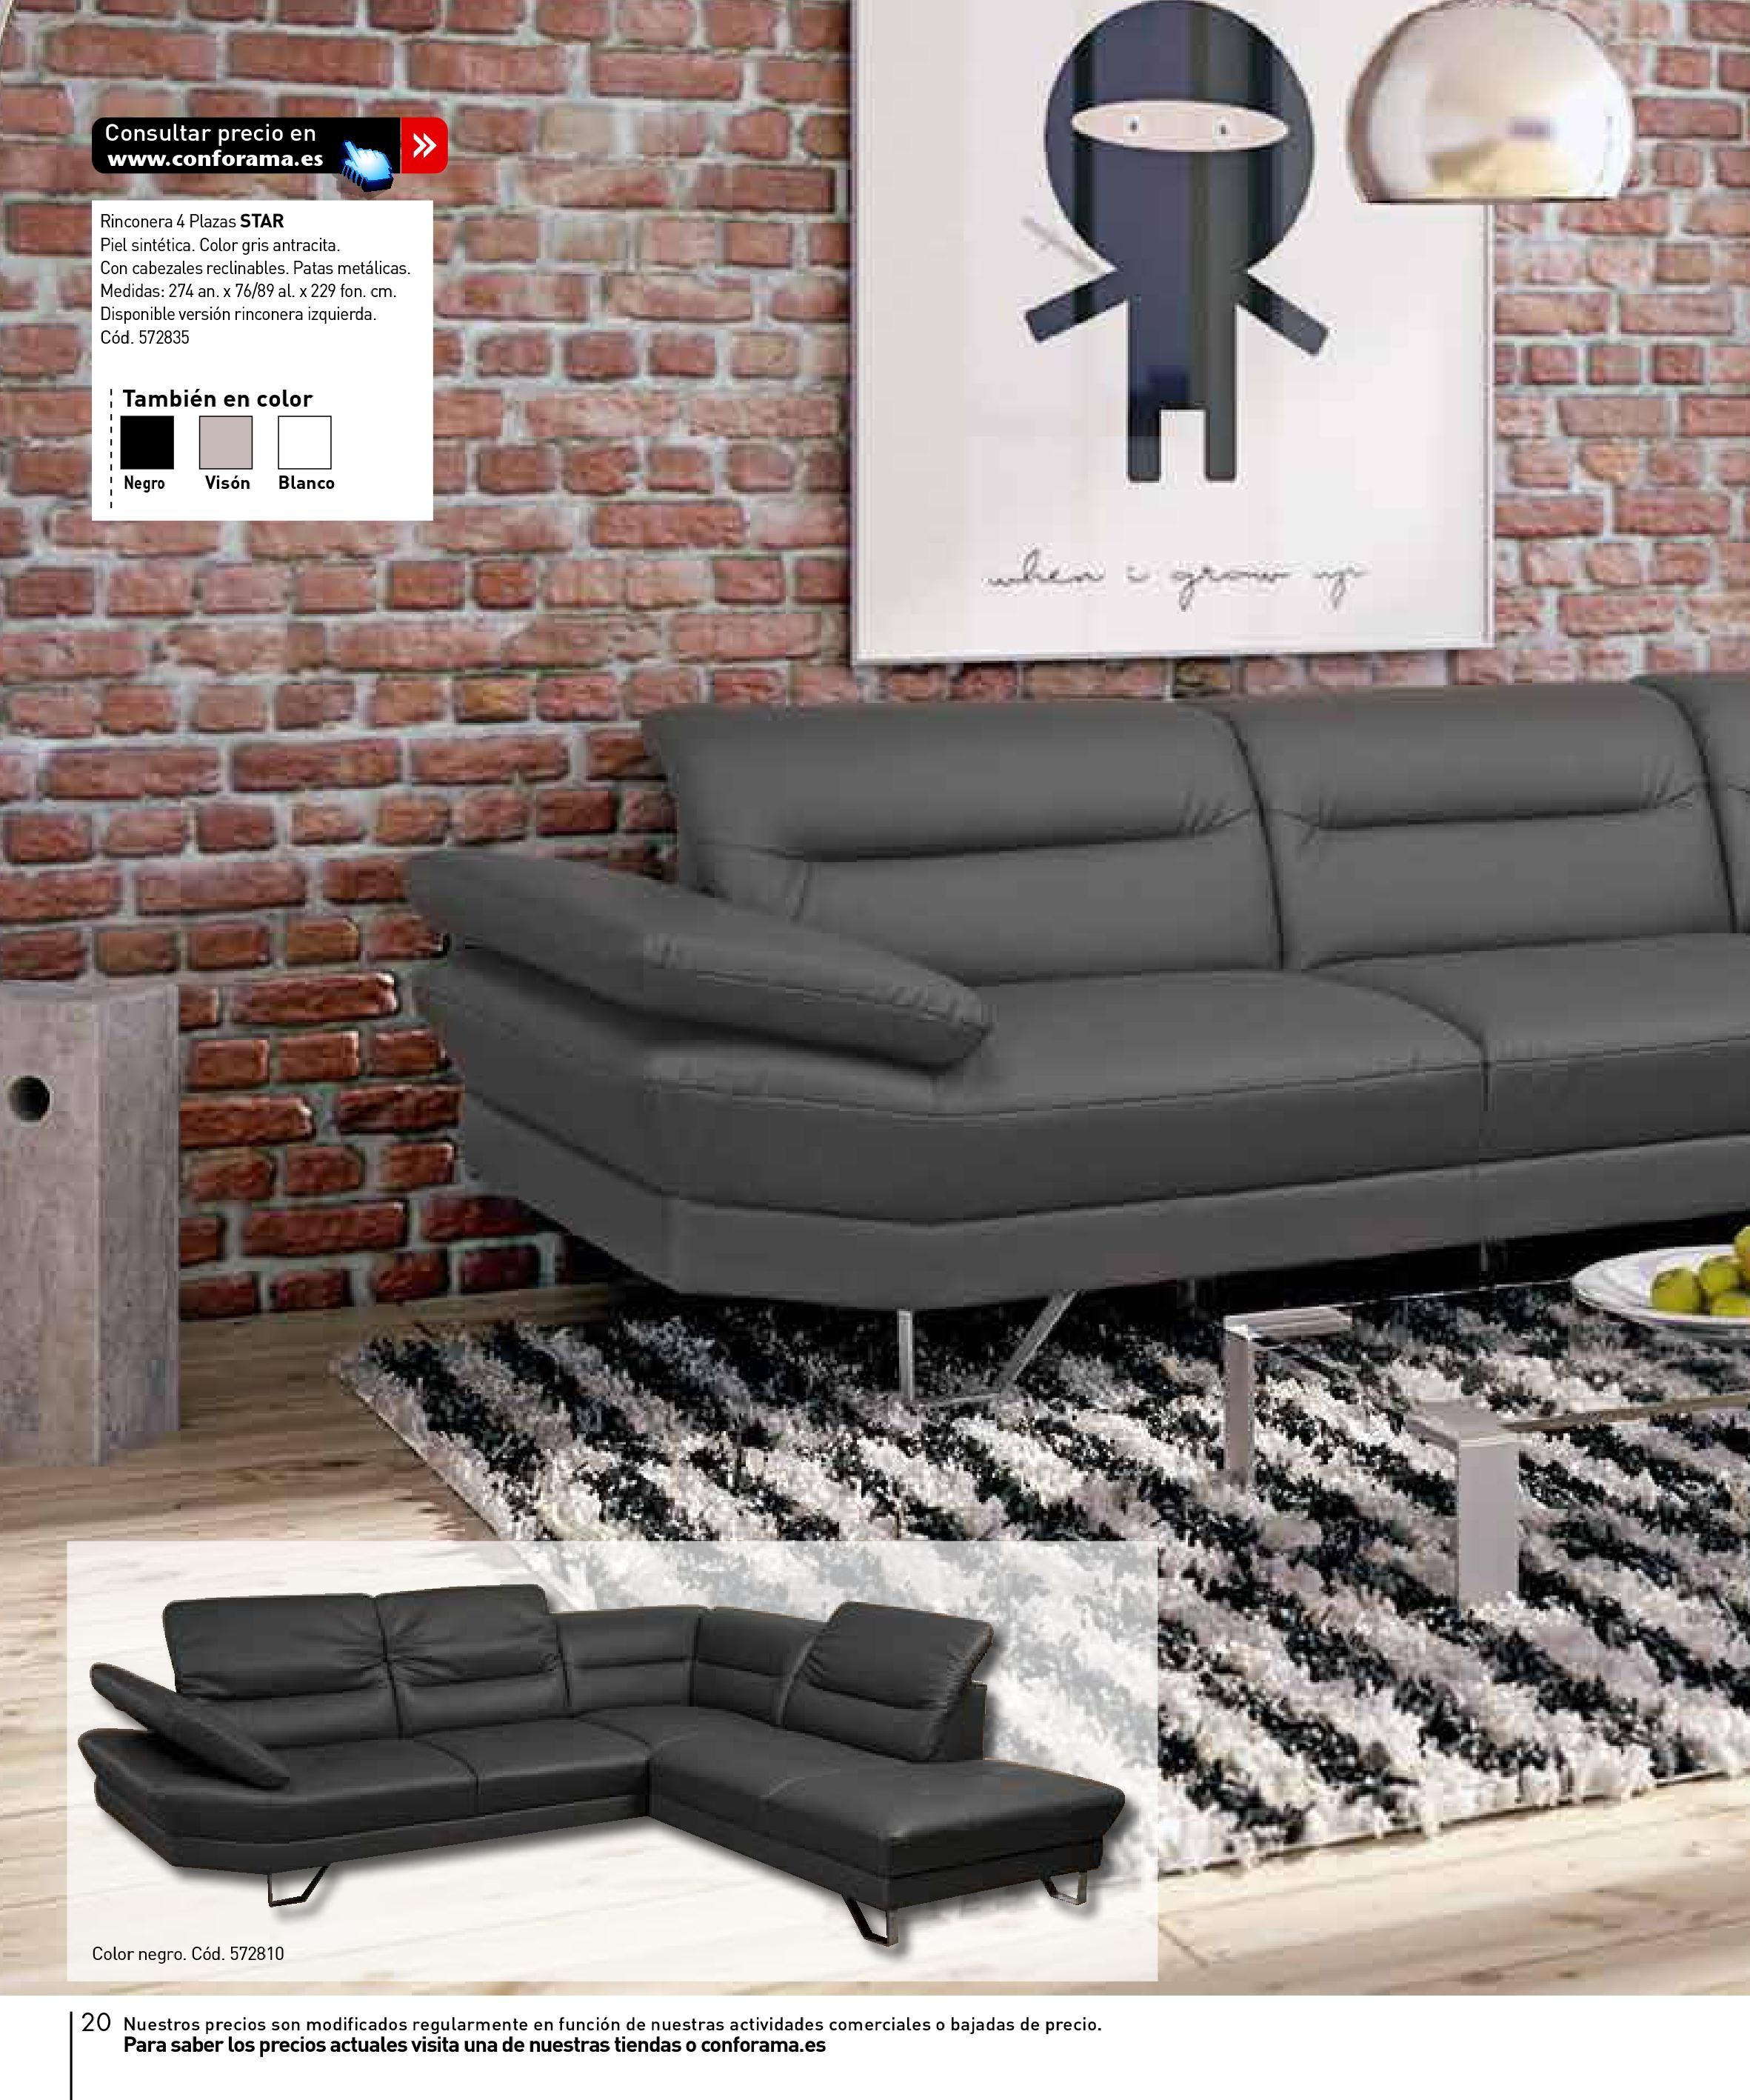 Sofas conforama 201520 for Sofas conforama catalogo